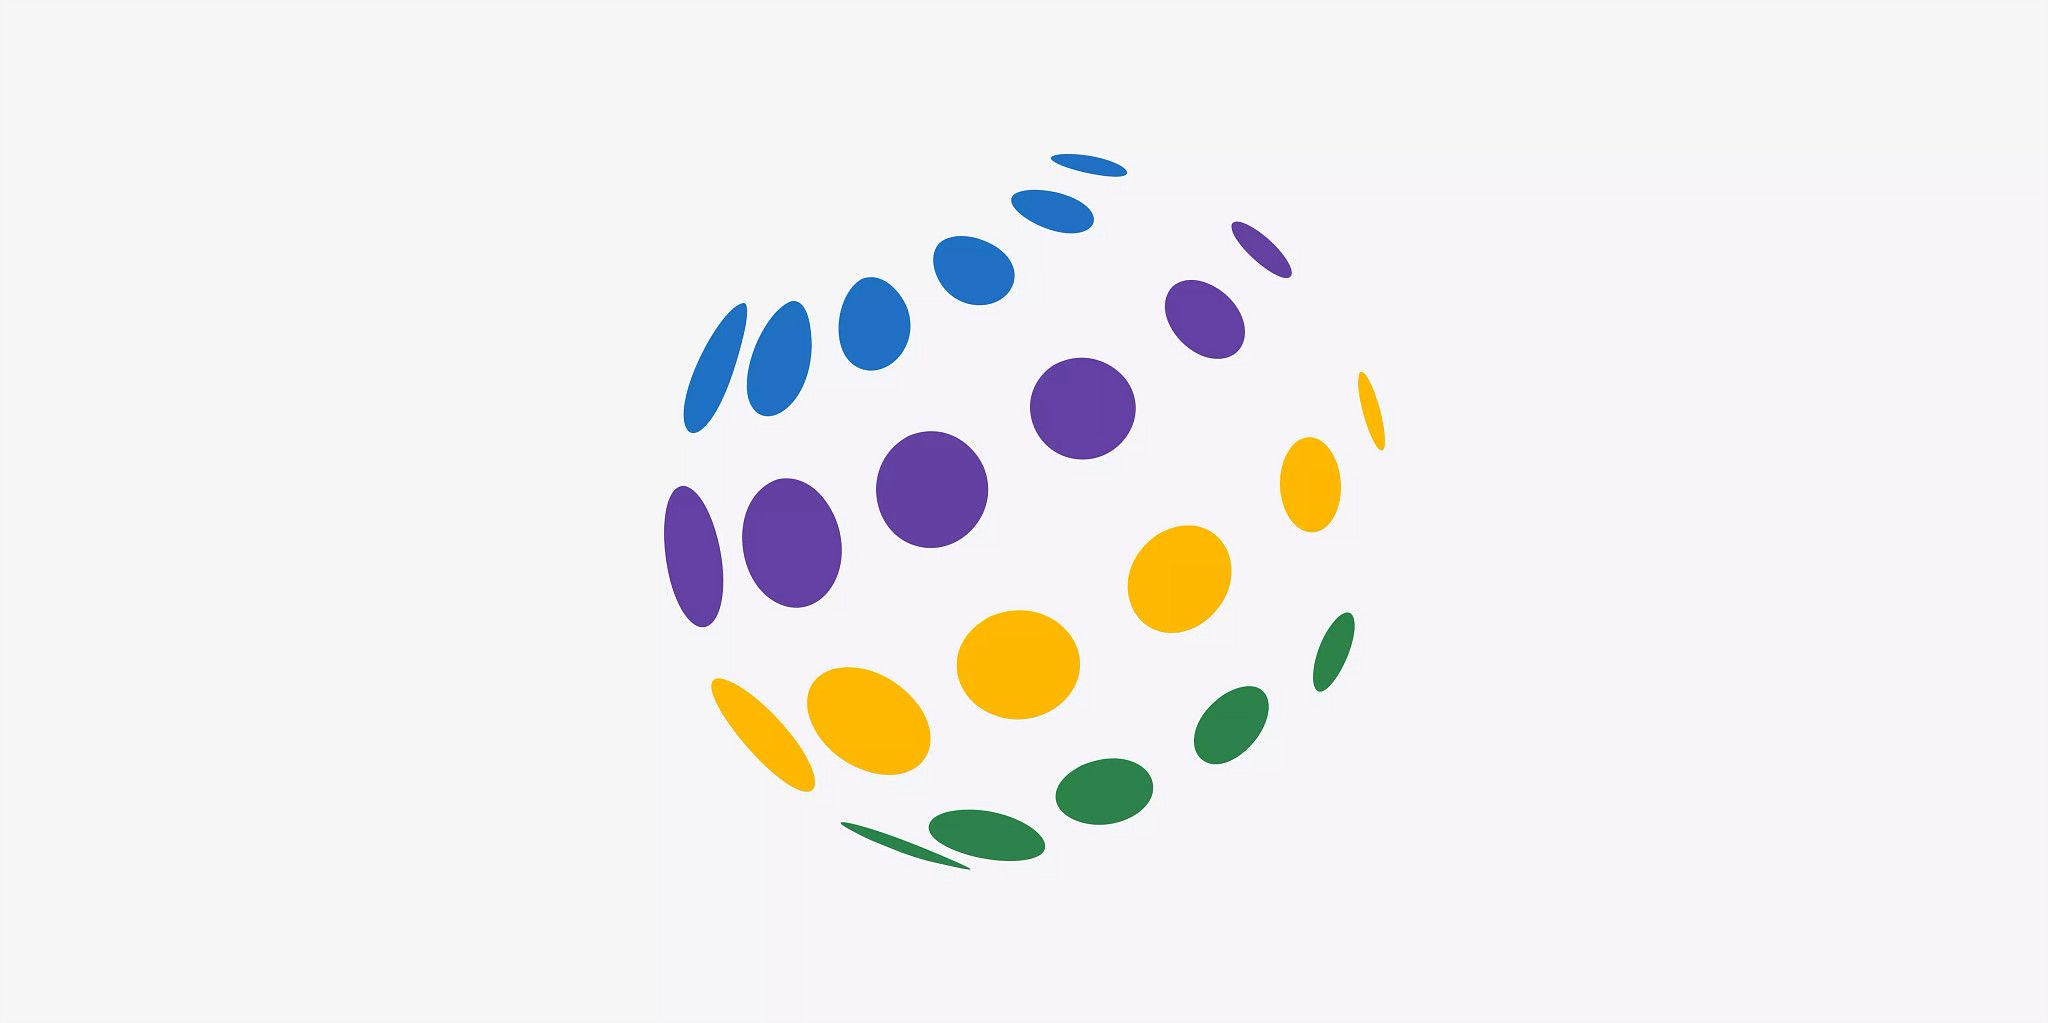 A circle placed in the middle of the image on a white background made out of four rows of colorful smaller circles, intended to look 3-D.